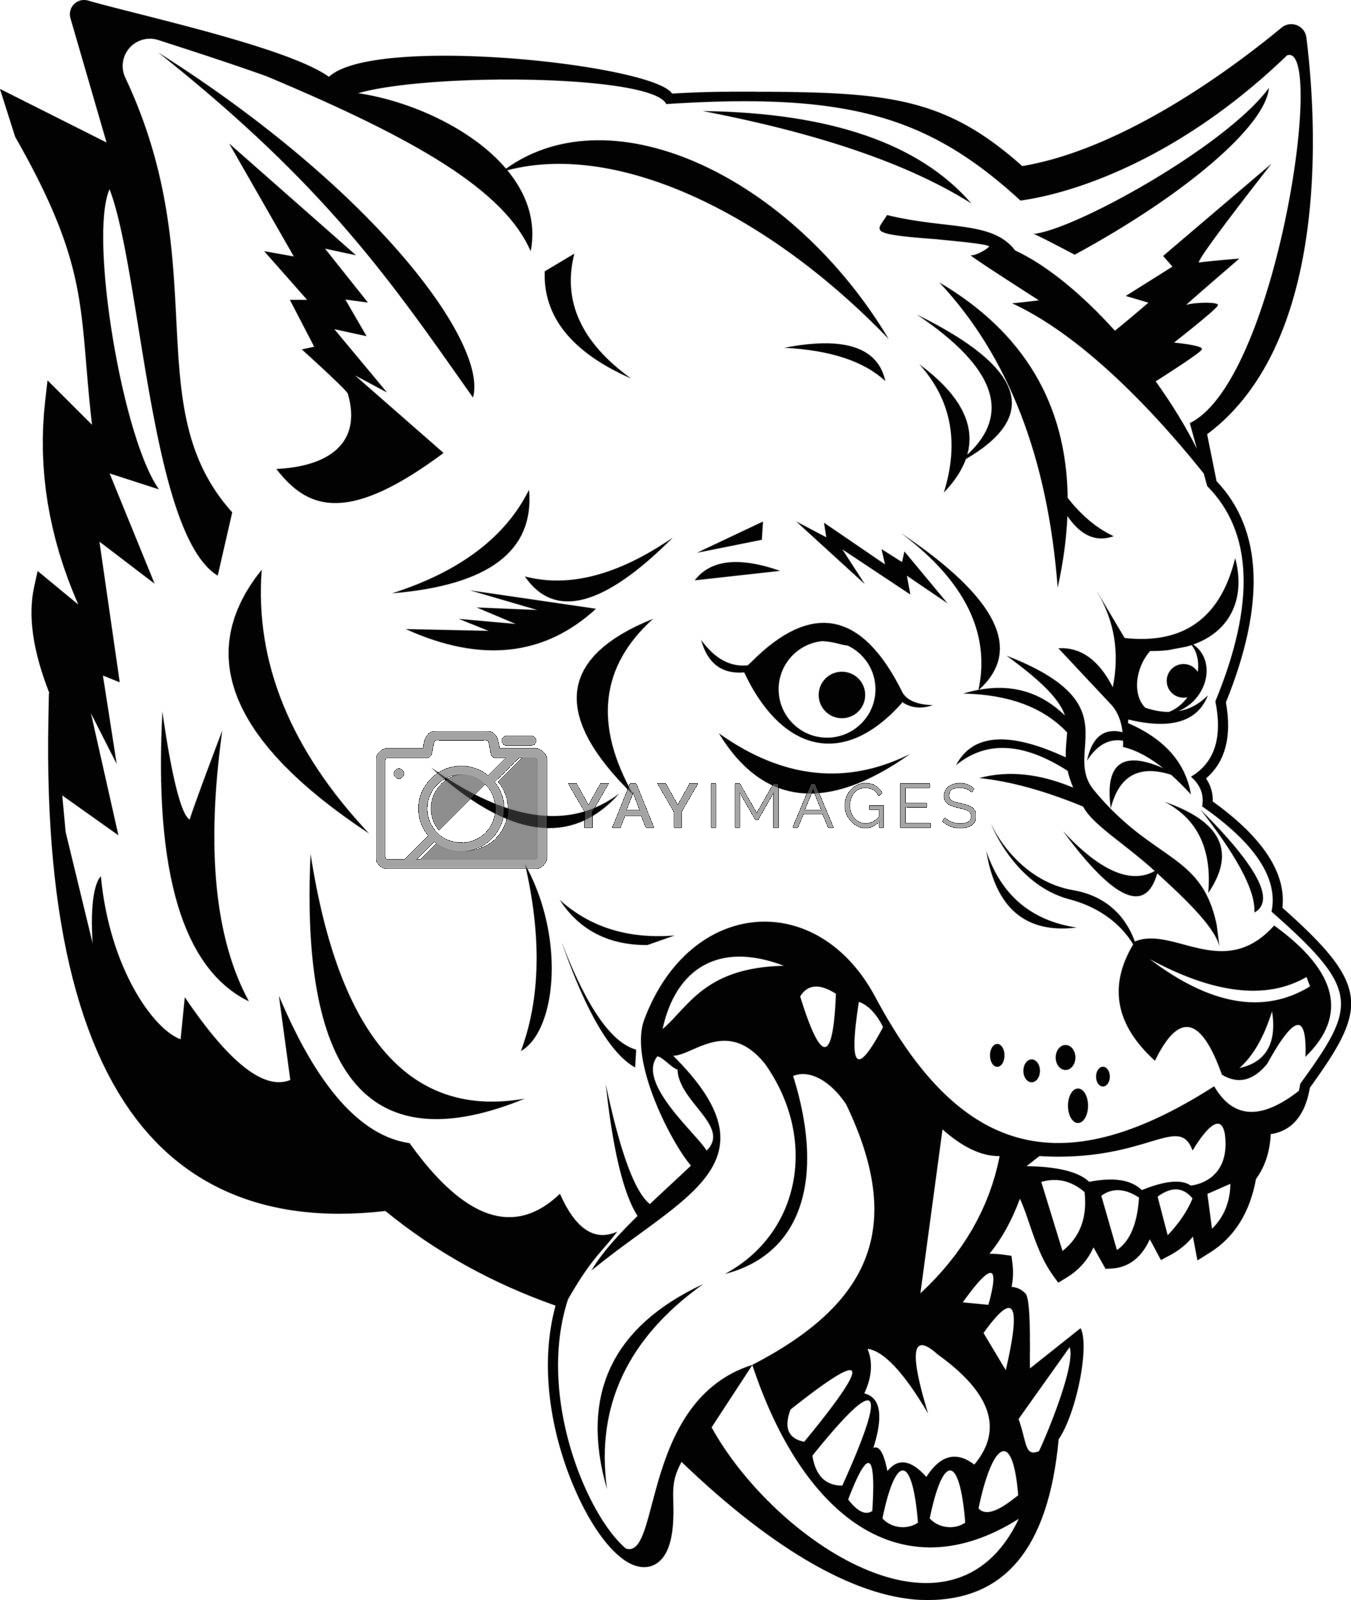 Sports mascot illustration of head of an aggressive and angry wolf, canis lupus, gray wolf or grey wolf, a large canine native to Eurasia and North America side view in black and white retro style.